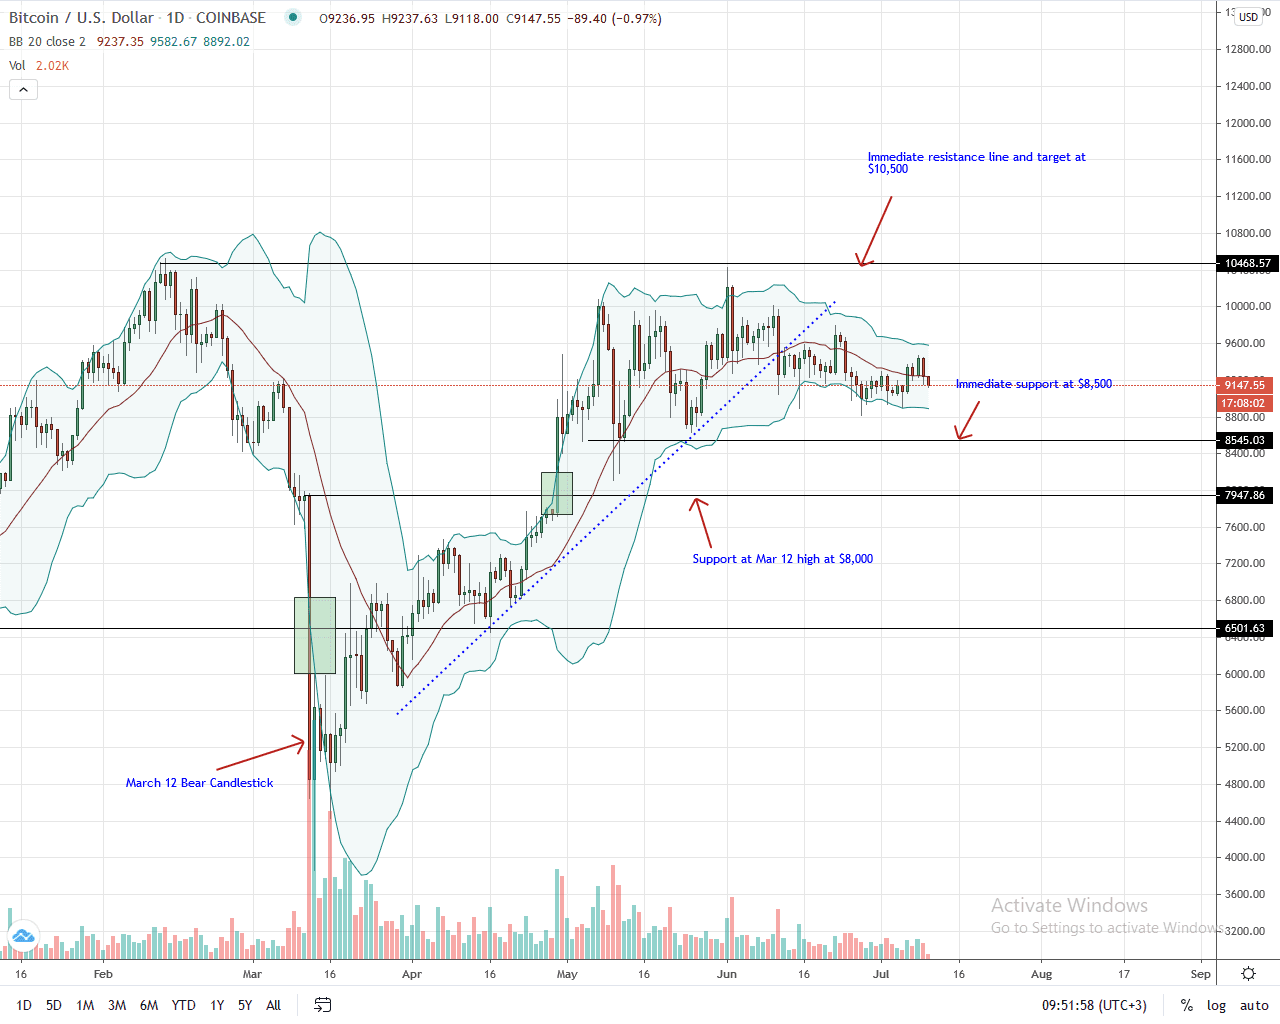 Bitcoin Daily Chart for July 10, 2020